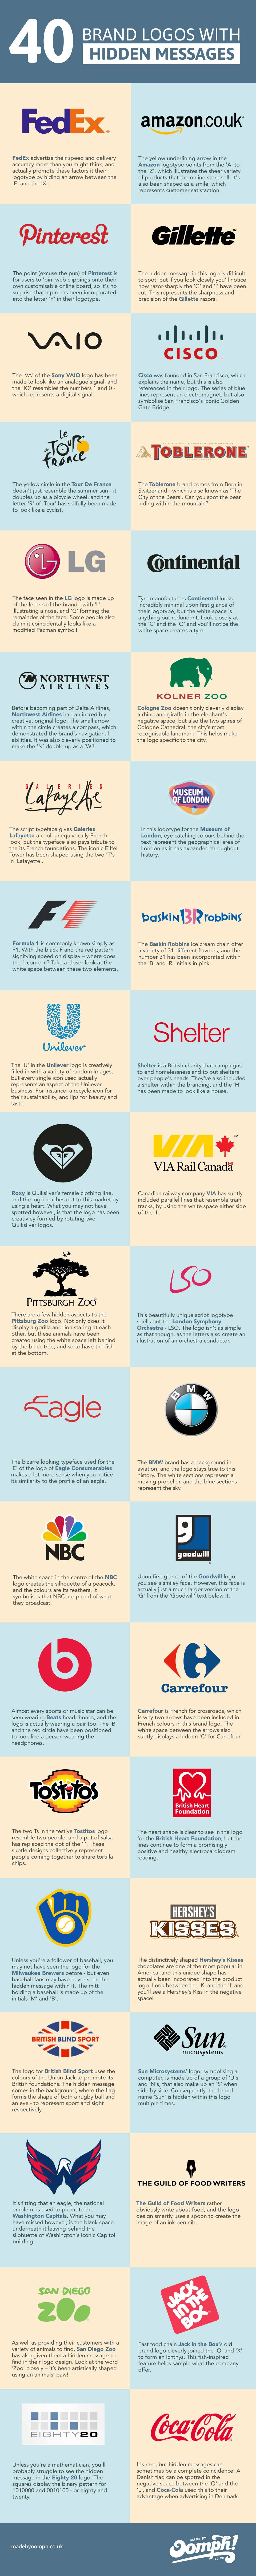 Infographic: 40 Brand Logos With Hidden Messages